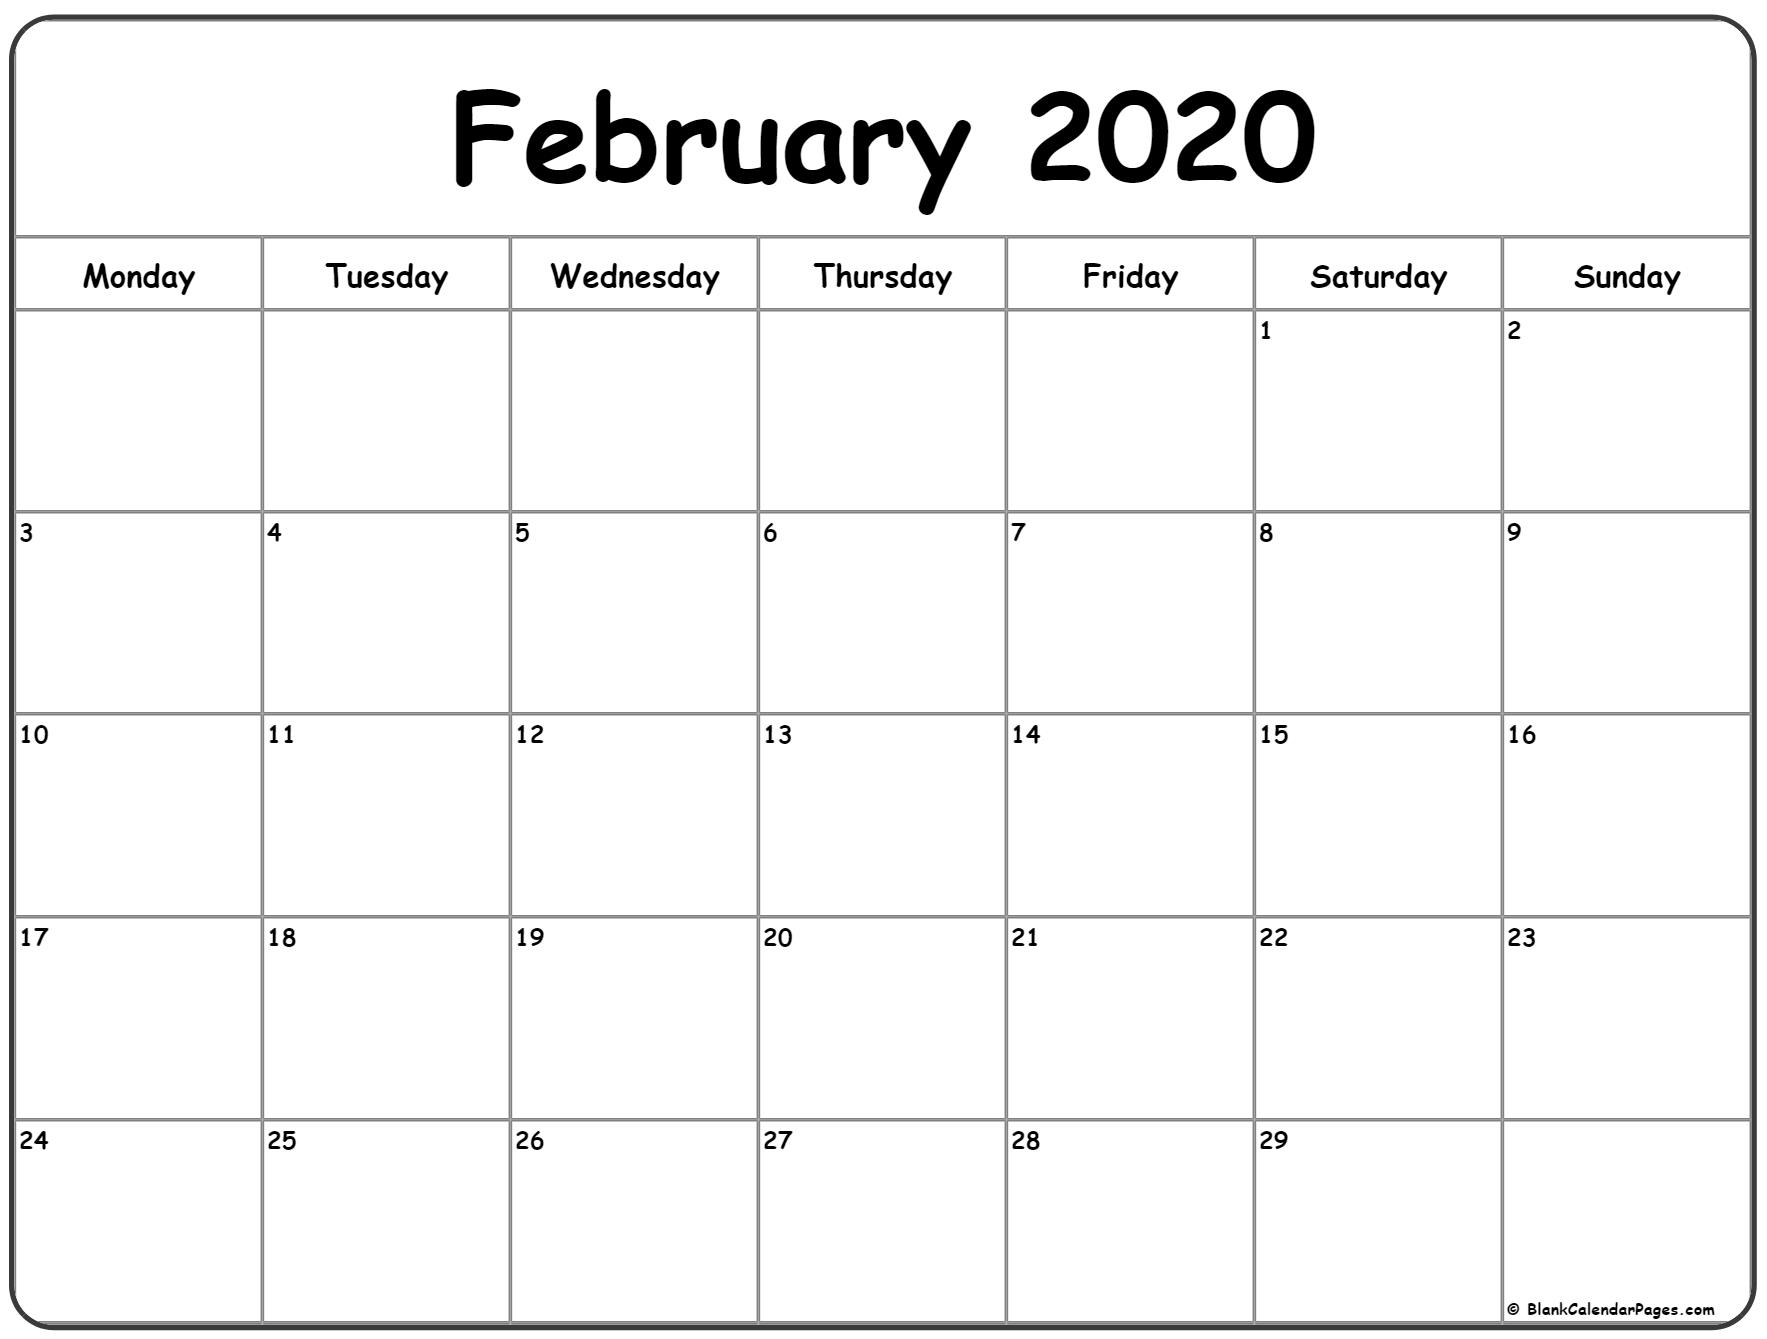 February 2020 Monday Calendar | Monday To Sunday regarding February 2020 Daily Calendar